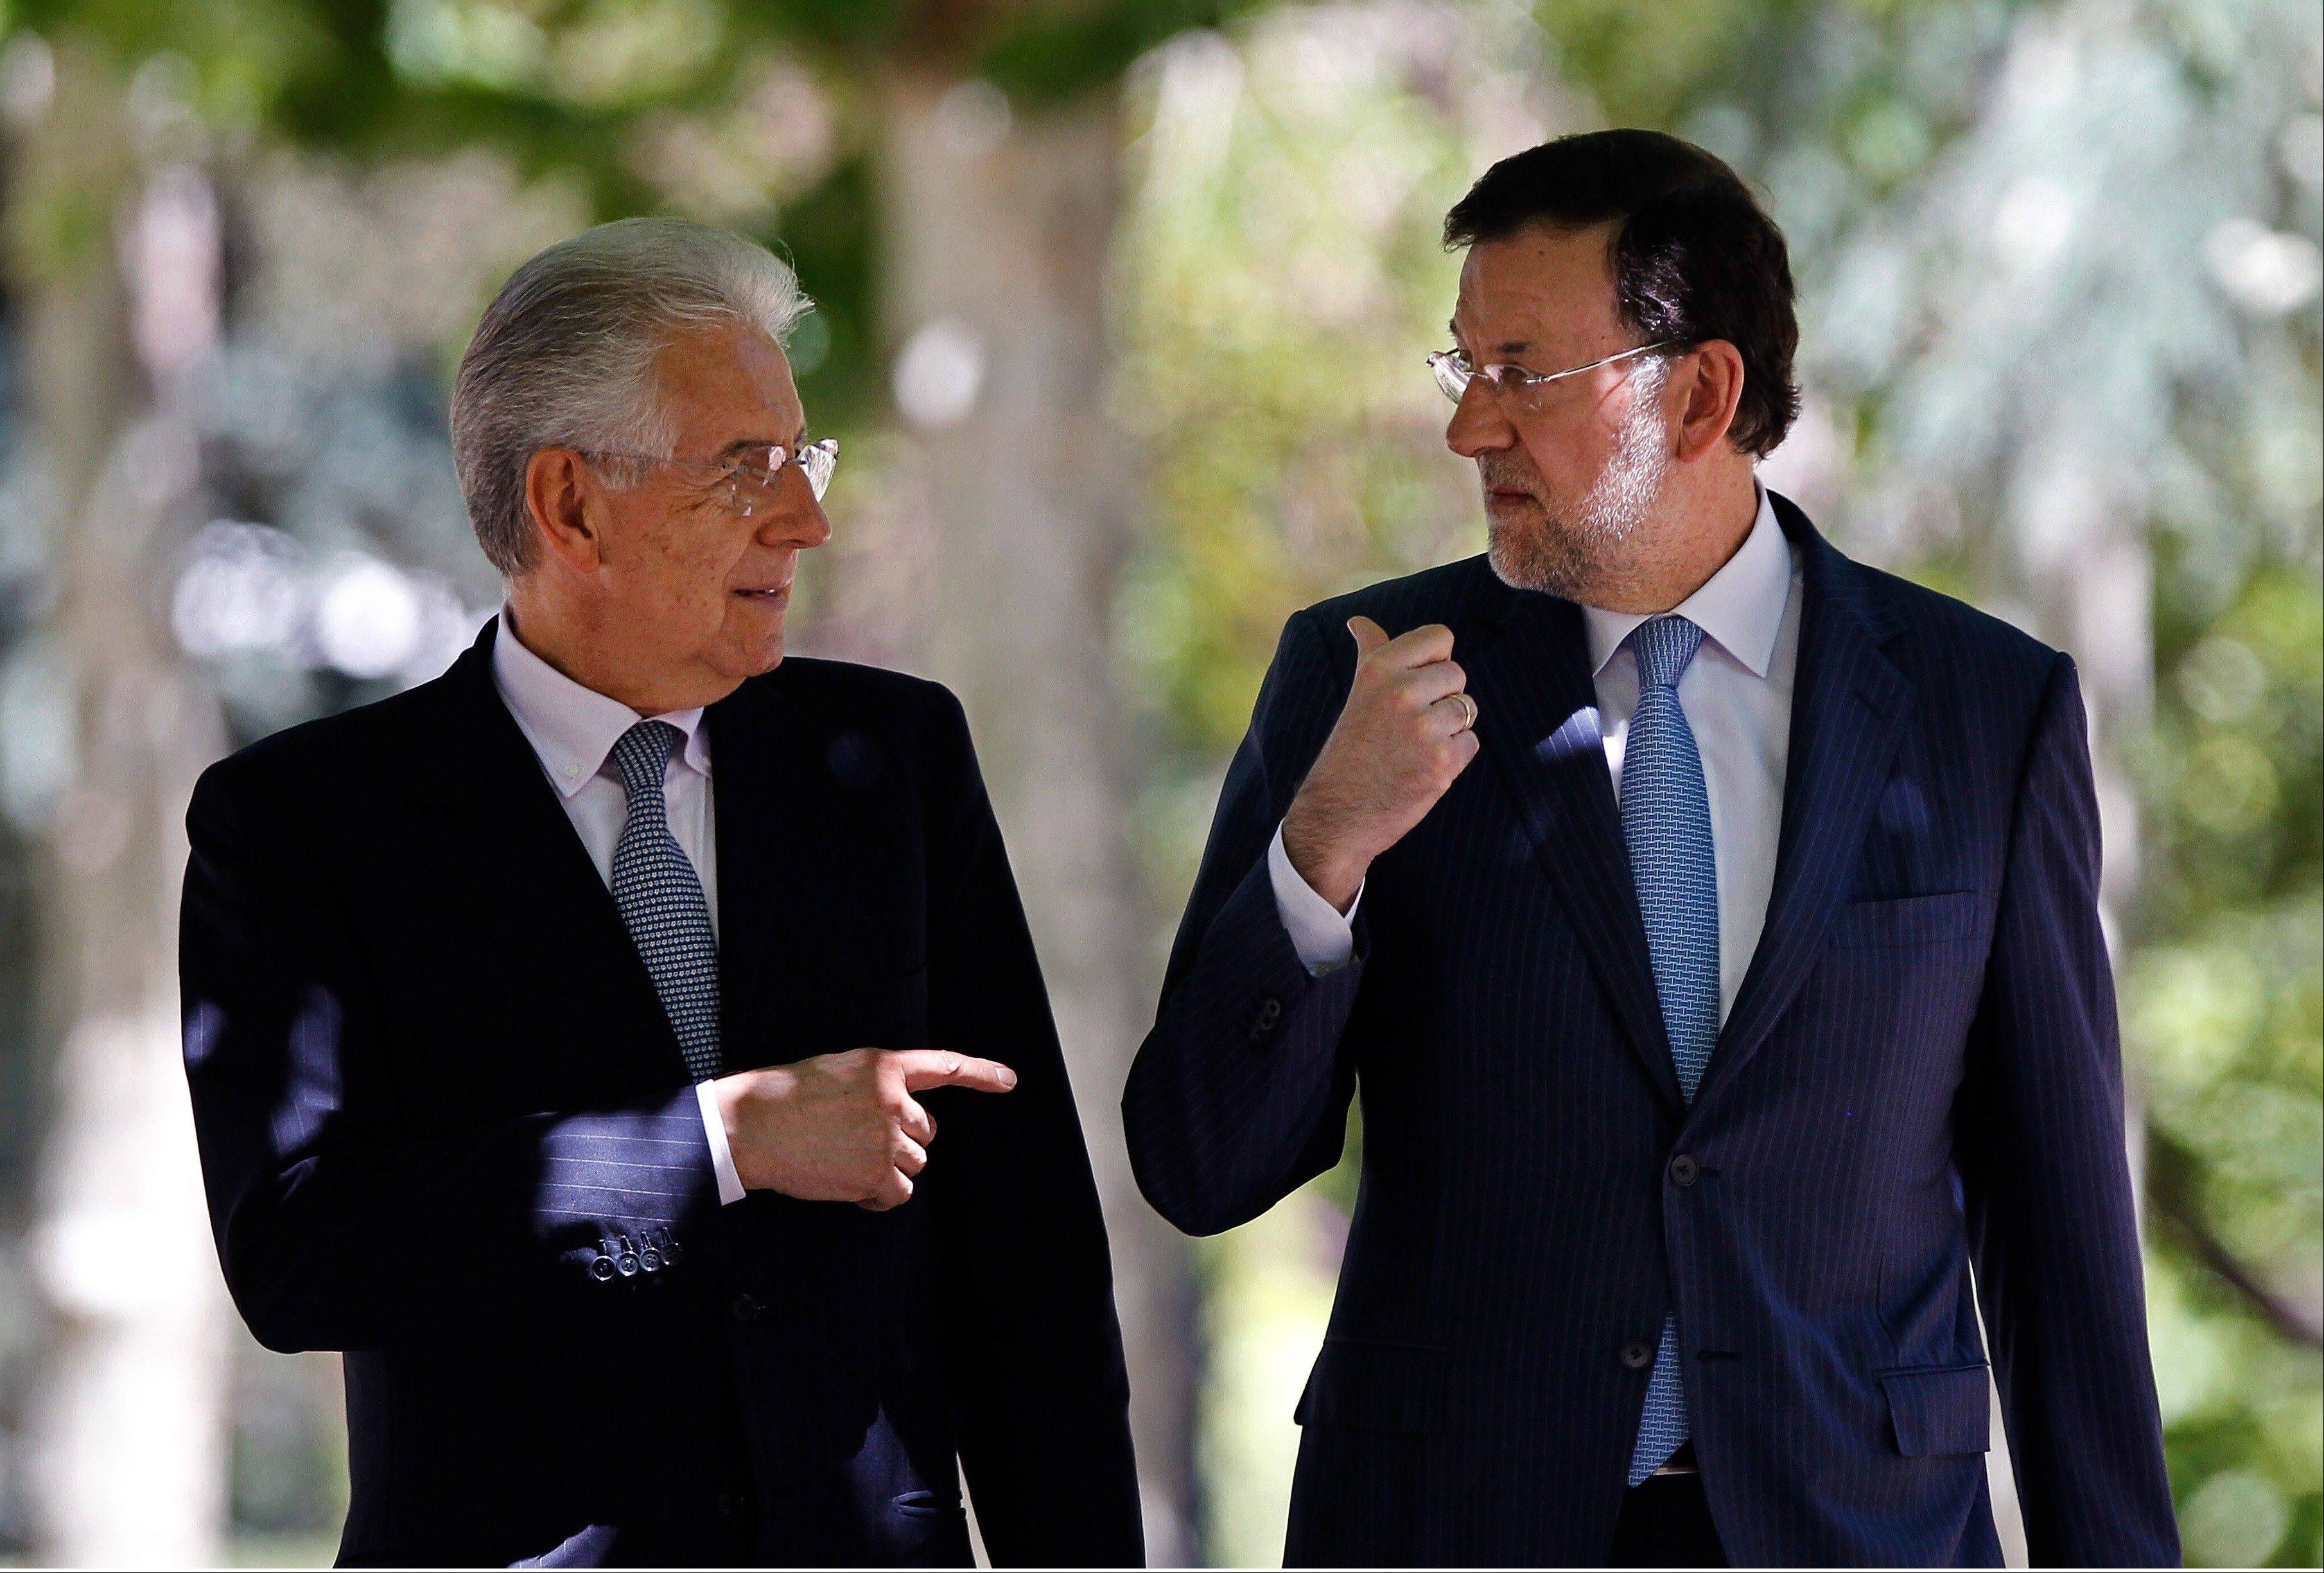 Spain's Prime Minister Mariano Rajoy, right, and Italy's Prime Minister Mario Monti, walk together during a meeting at the Moncloa Palace in Madrid, Spain, Thursday.